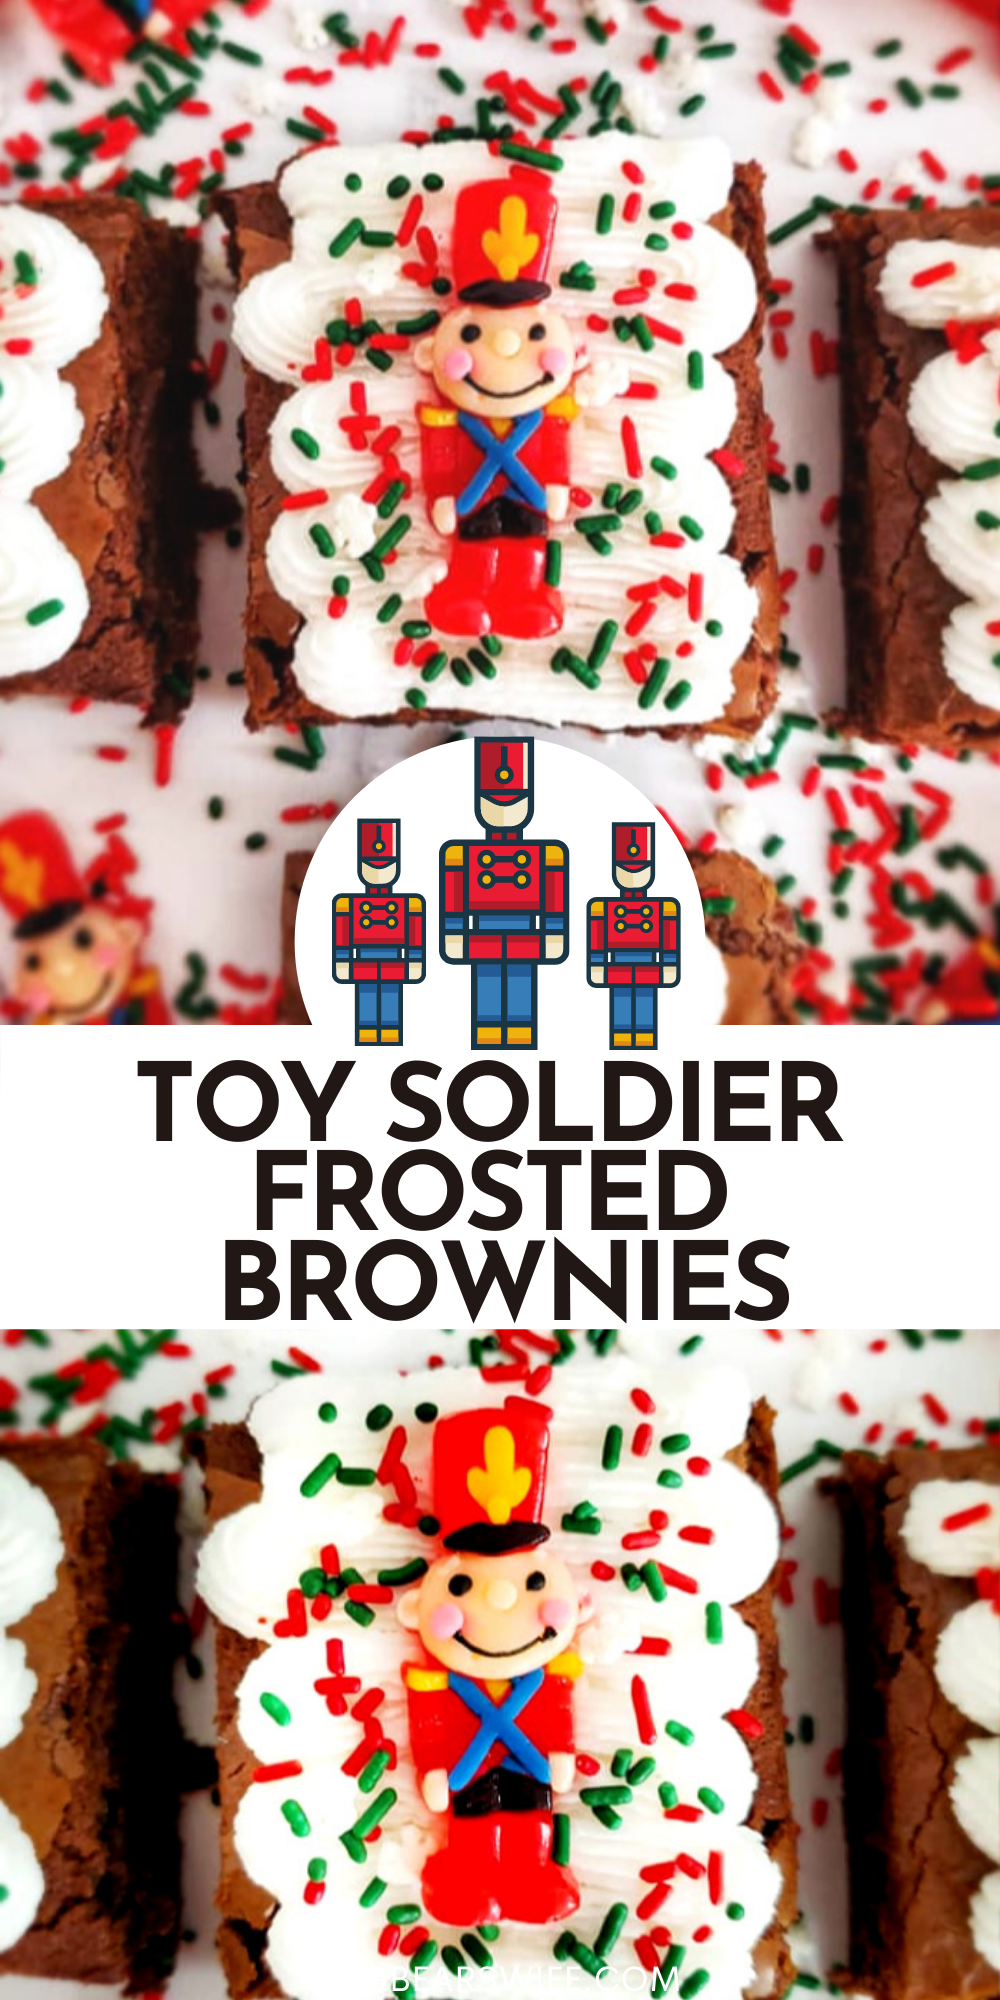 Whip up a festive batch of Holiday brownies with this recipe for Easy Toy Soldier Frosted Brownies! Kids and Adults will both have fun decorating these simple treats! So cute but so quick to toss together!  via @bigbearswife